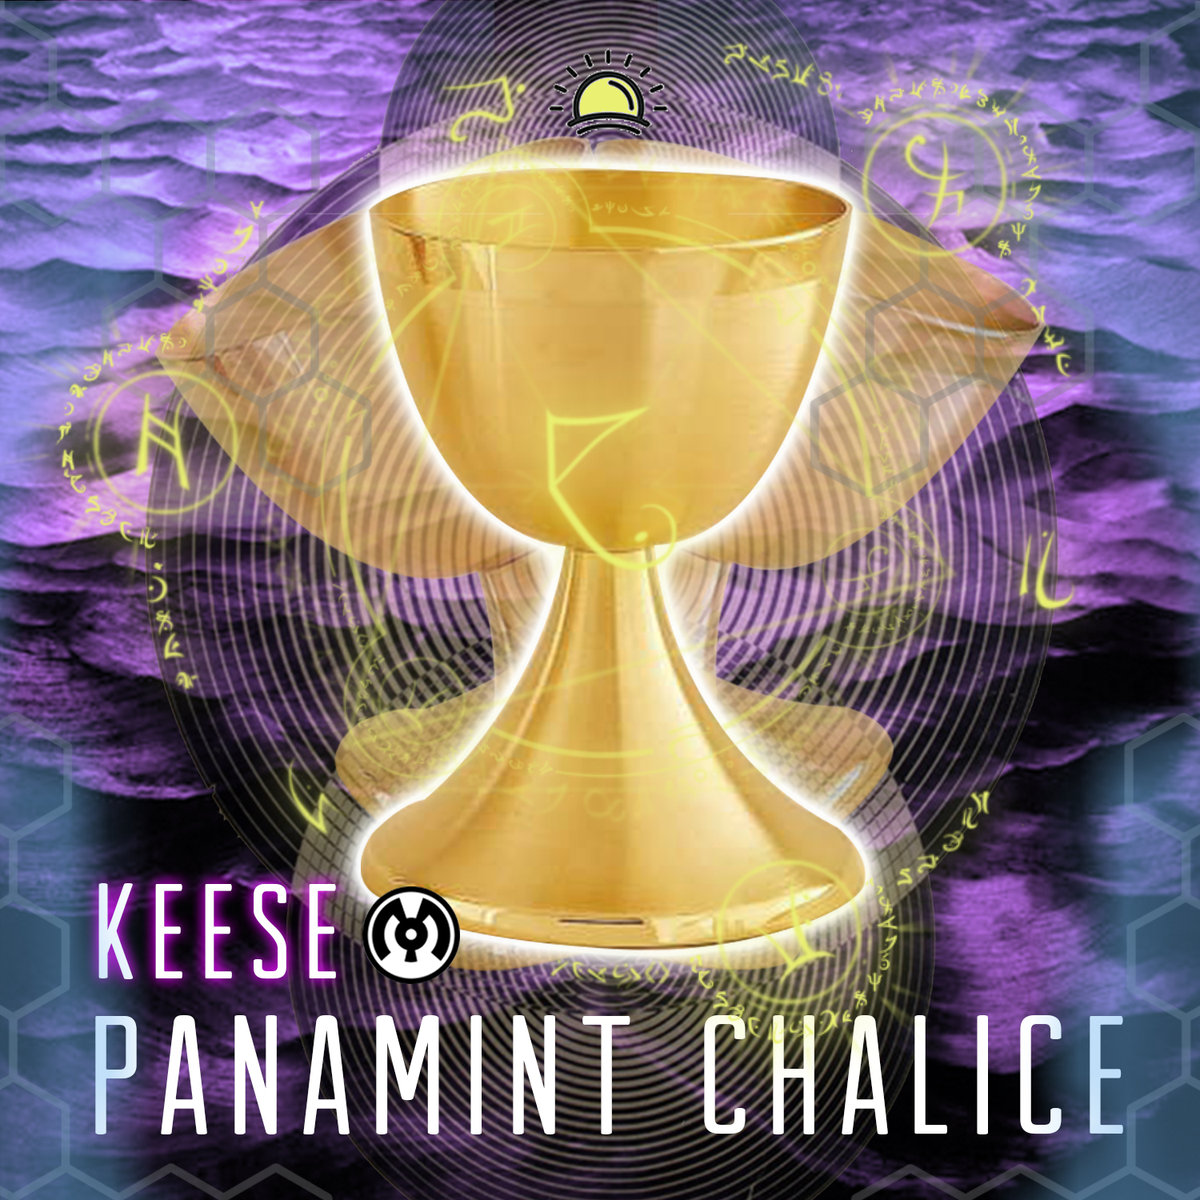 Keese - Less Is More @ 'Panamint Chalice' album (electronic, dubstep)